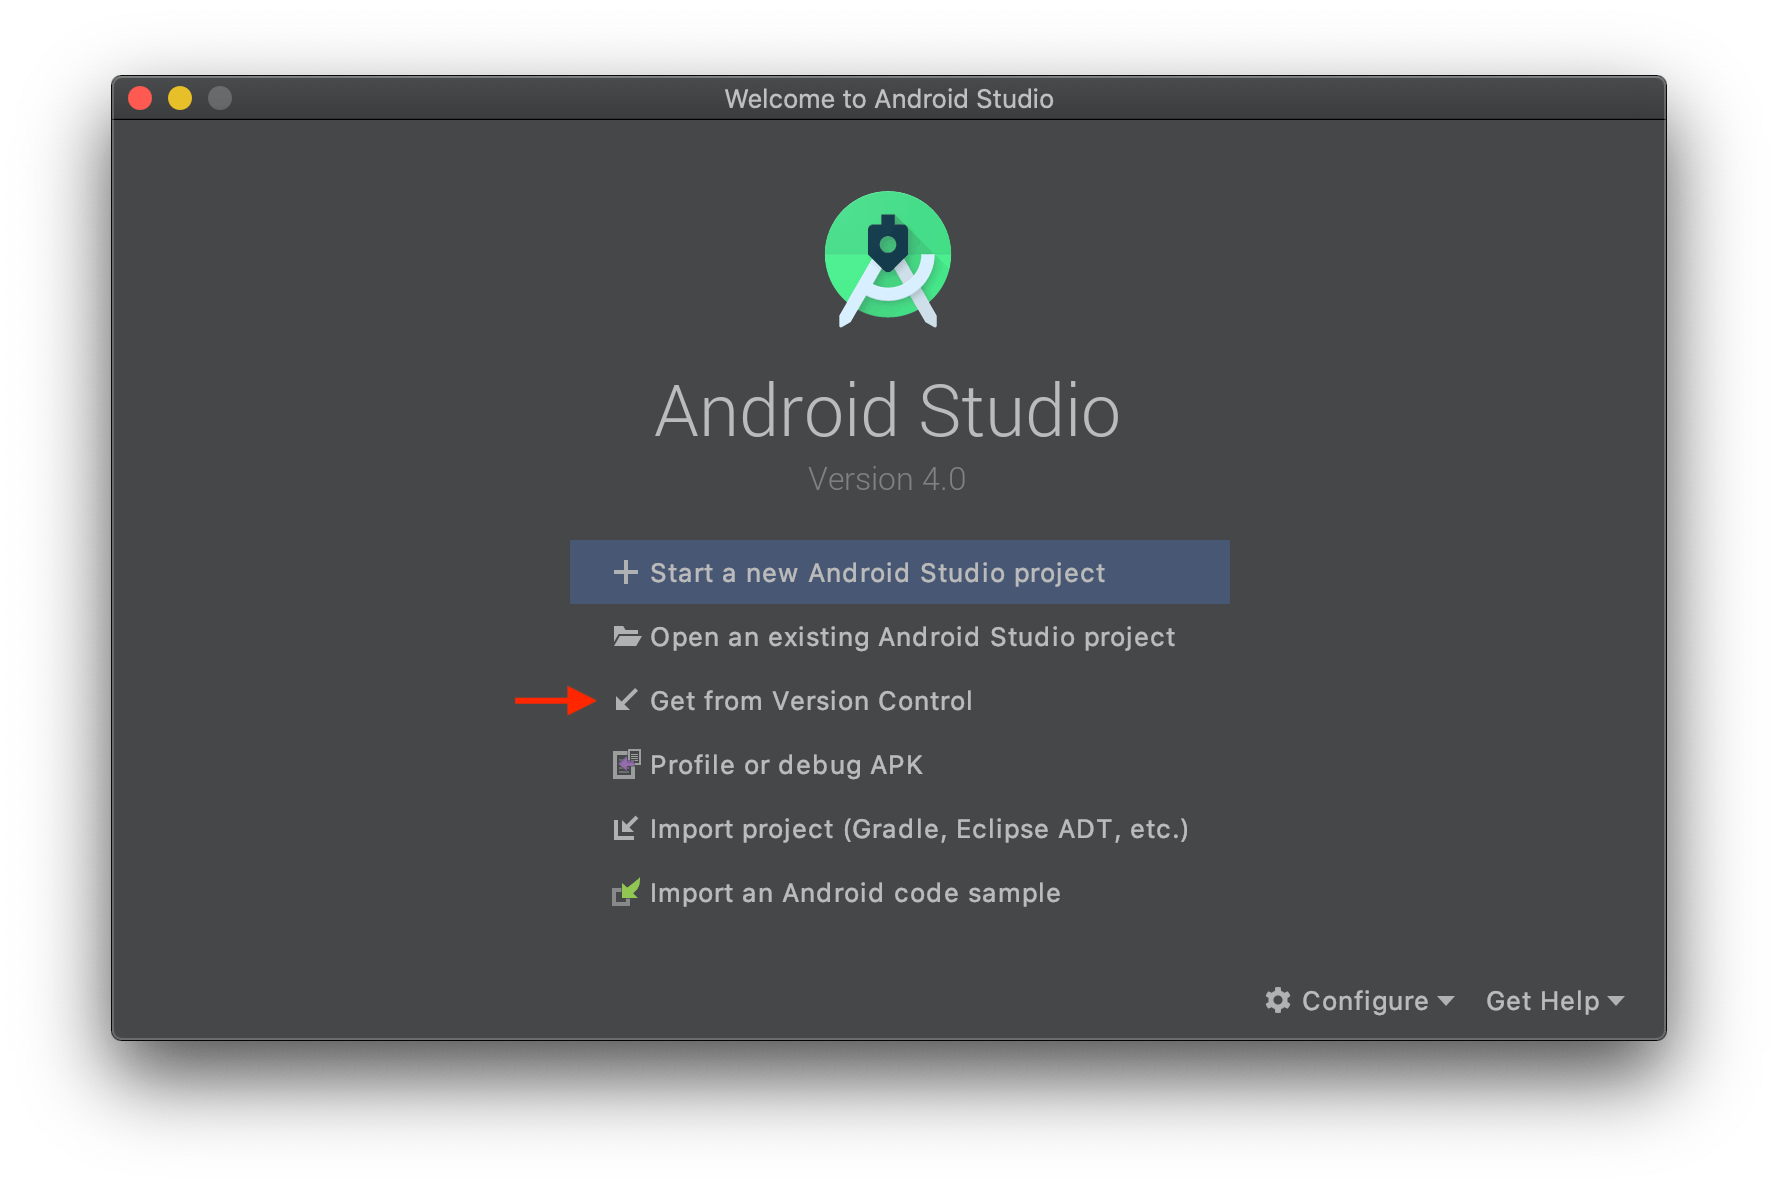 Image shows Android Studio welcome screen with an arrow to the Get from Version Control button